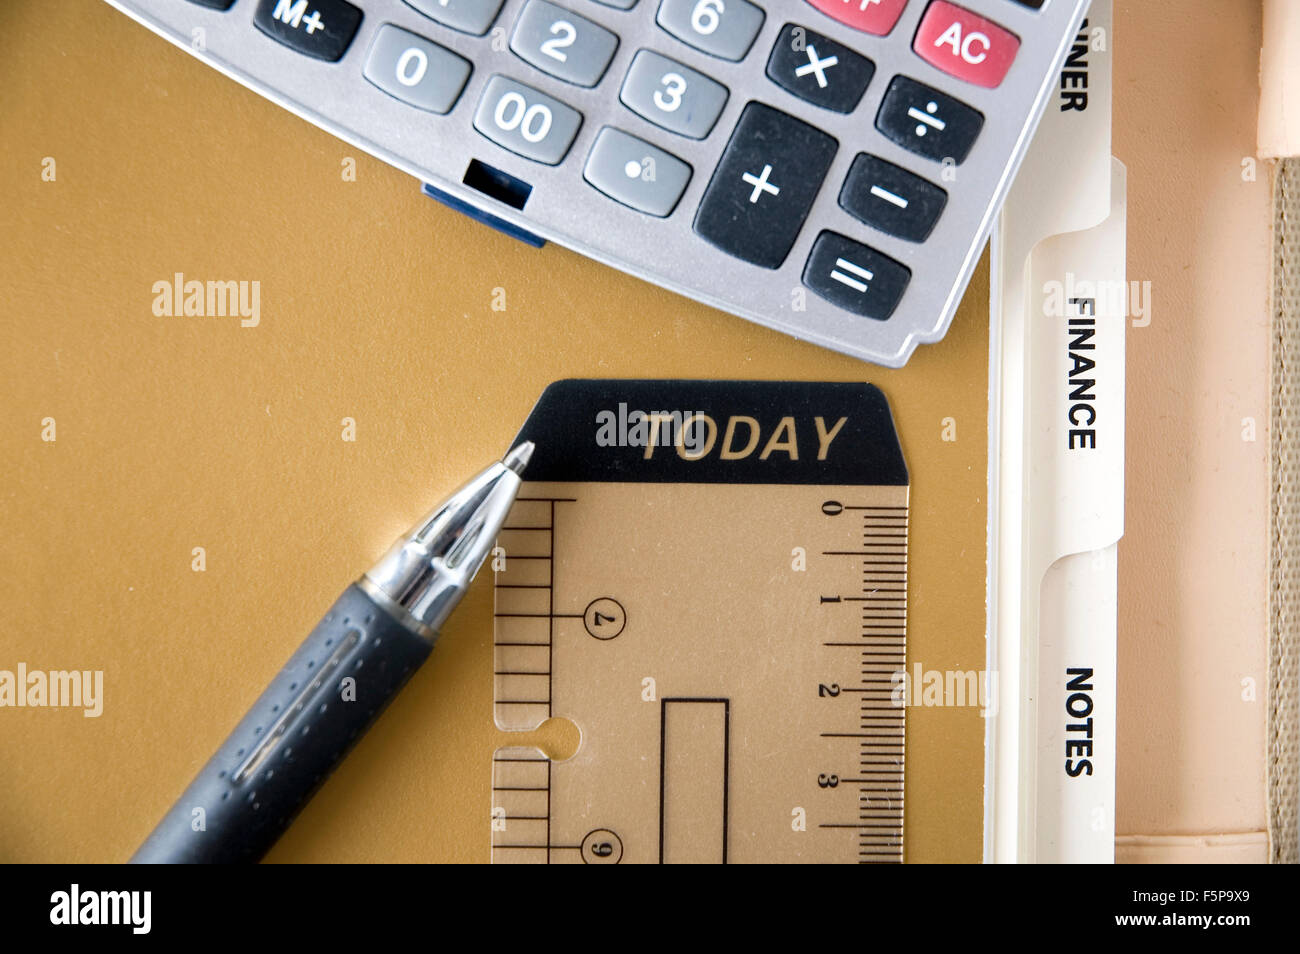 pen point to today tag with calculator put on finance page Stock Photo